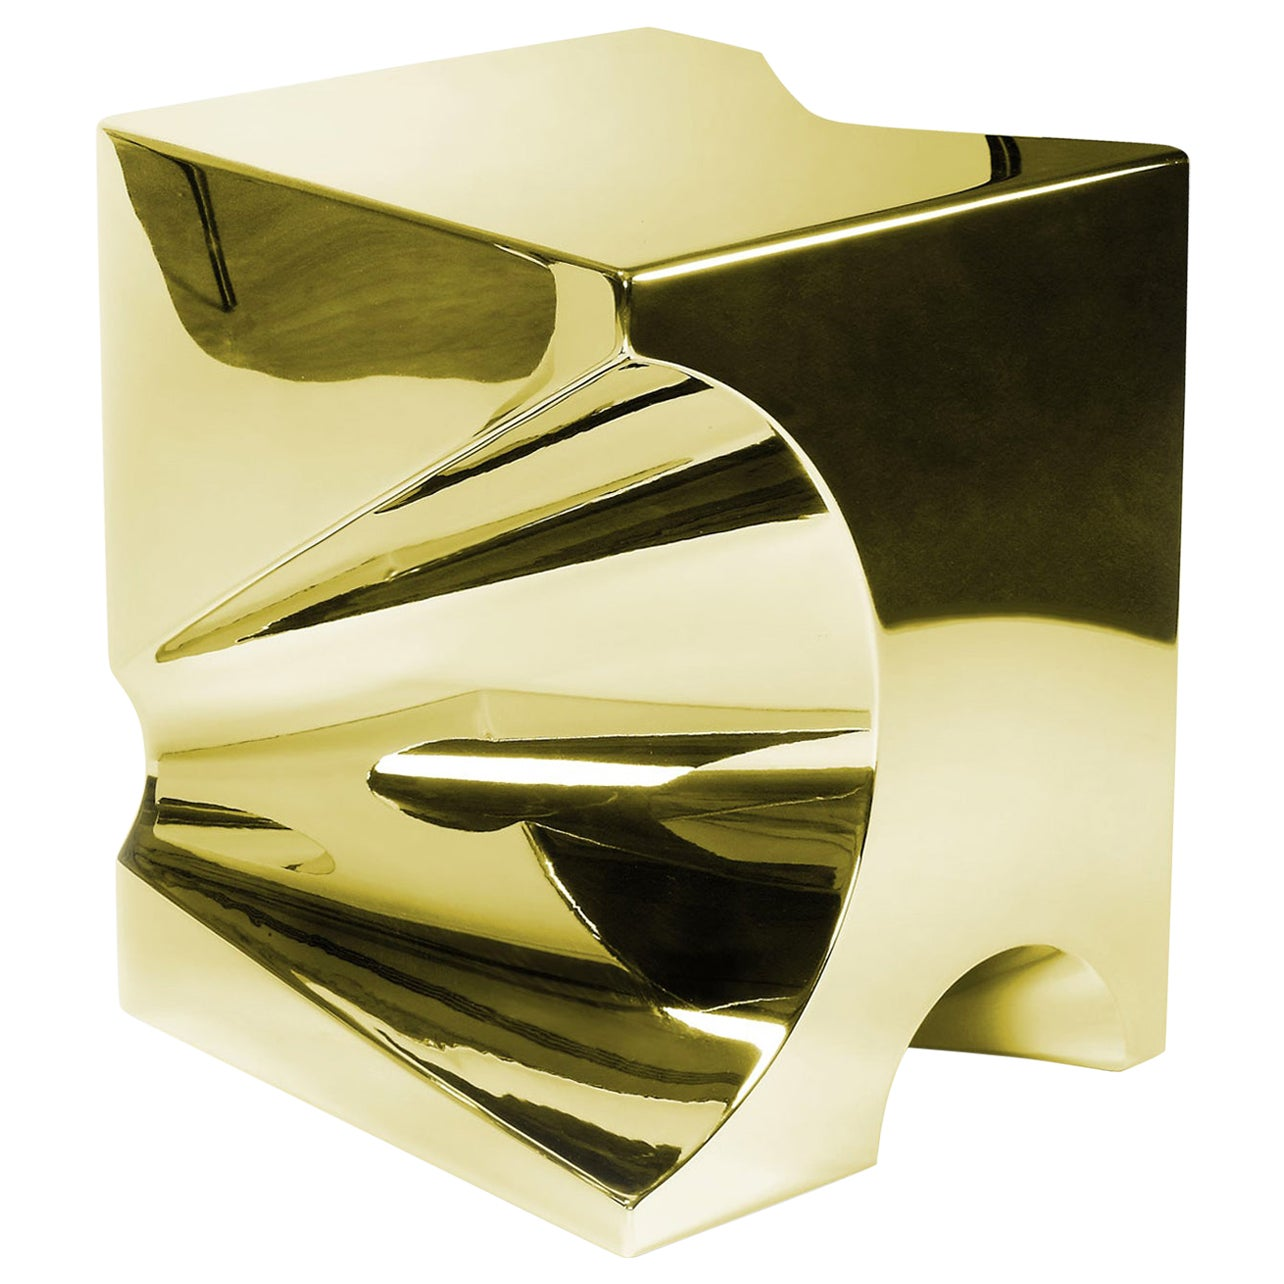 Side Table or Stool Cubic Square Steel Gold Italian Contemporary Design